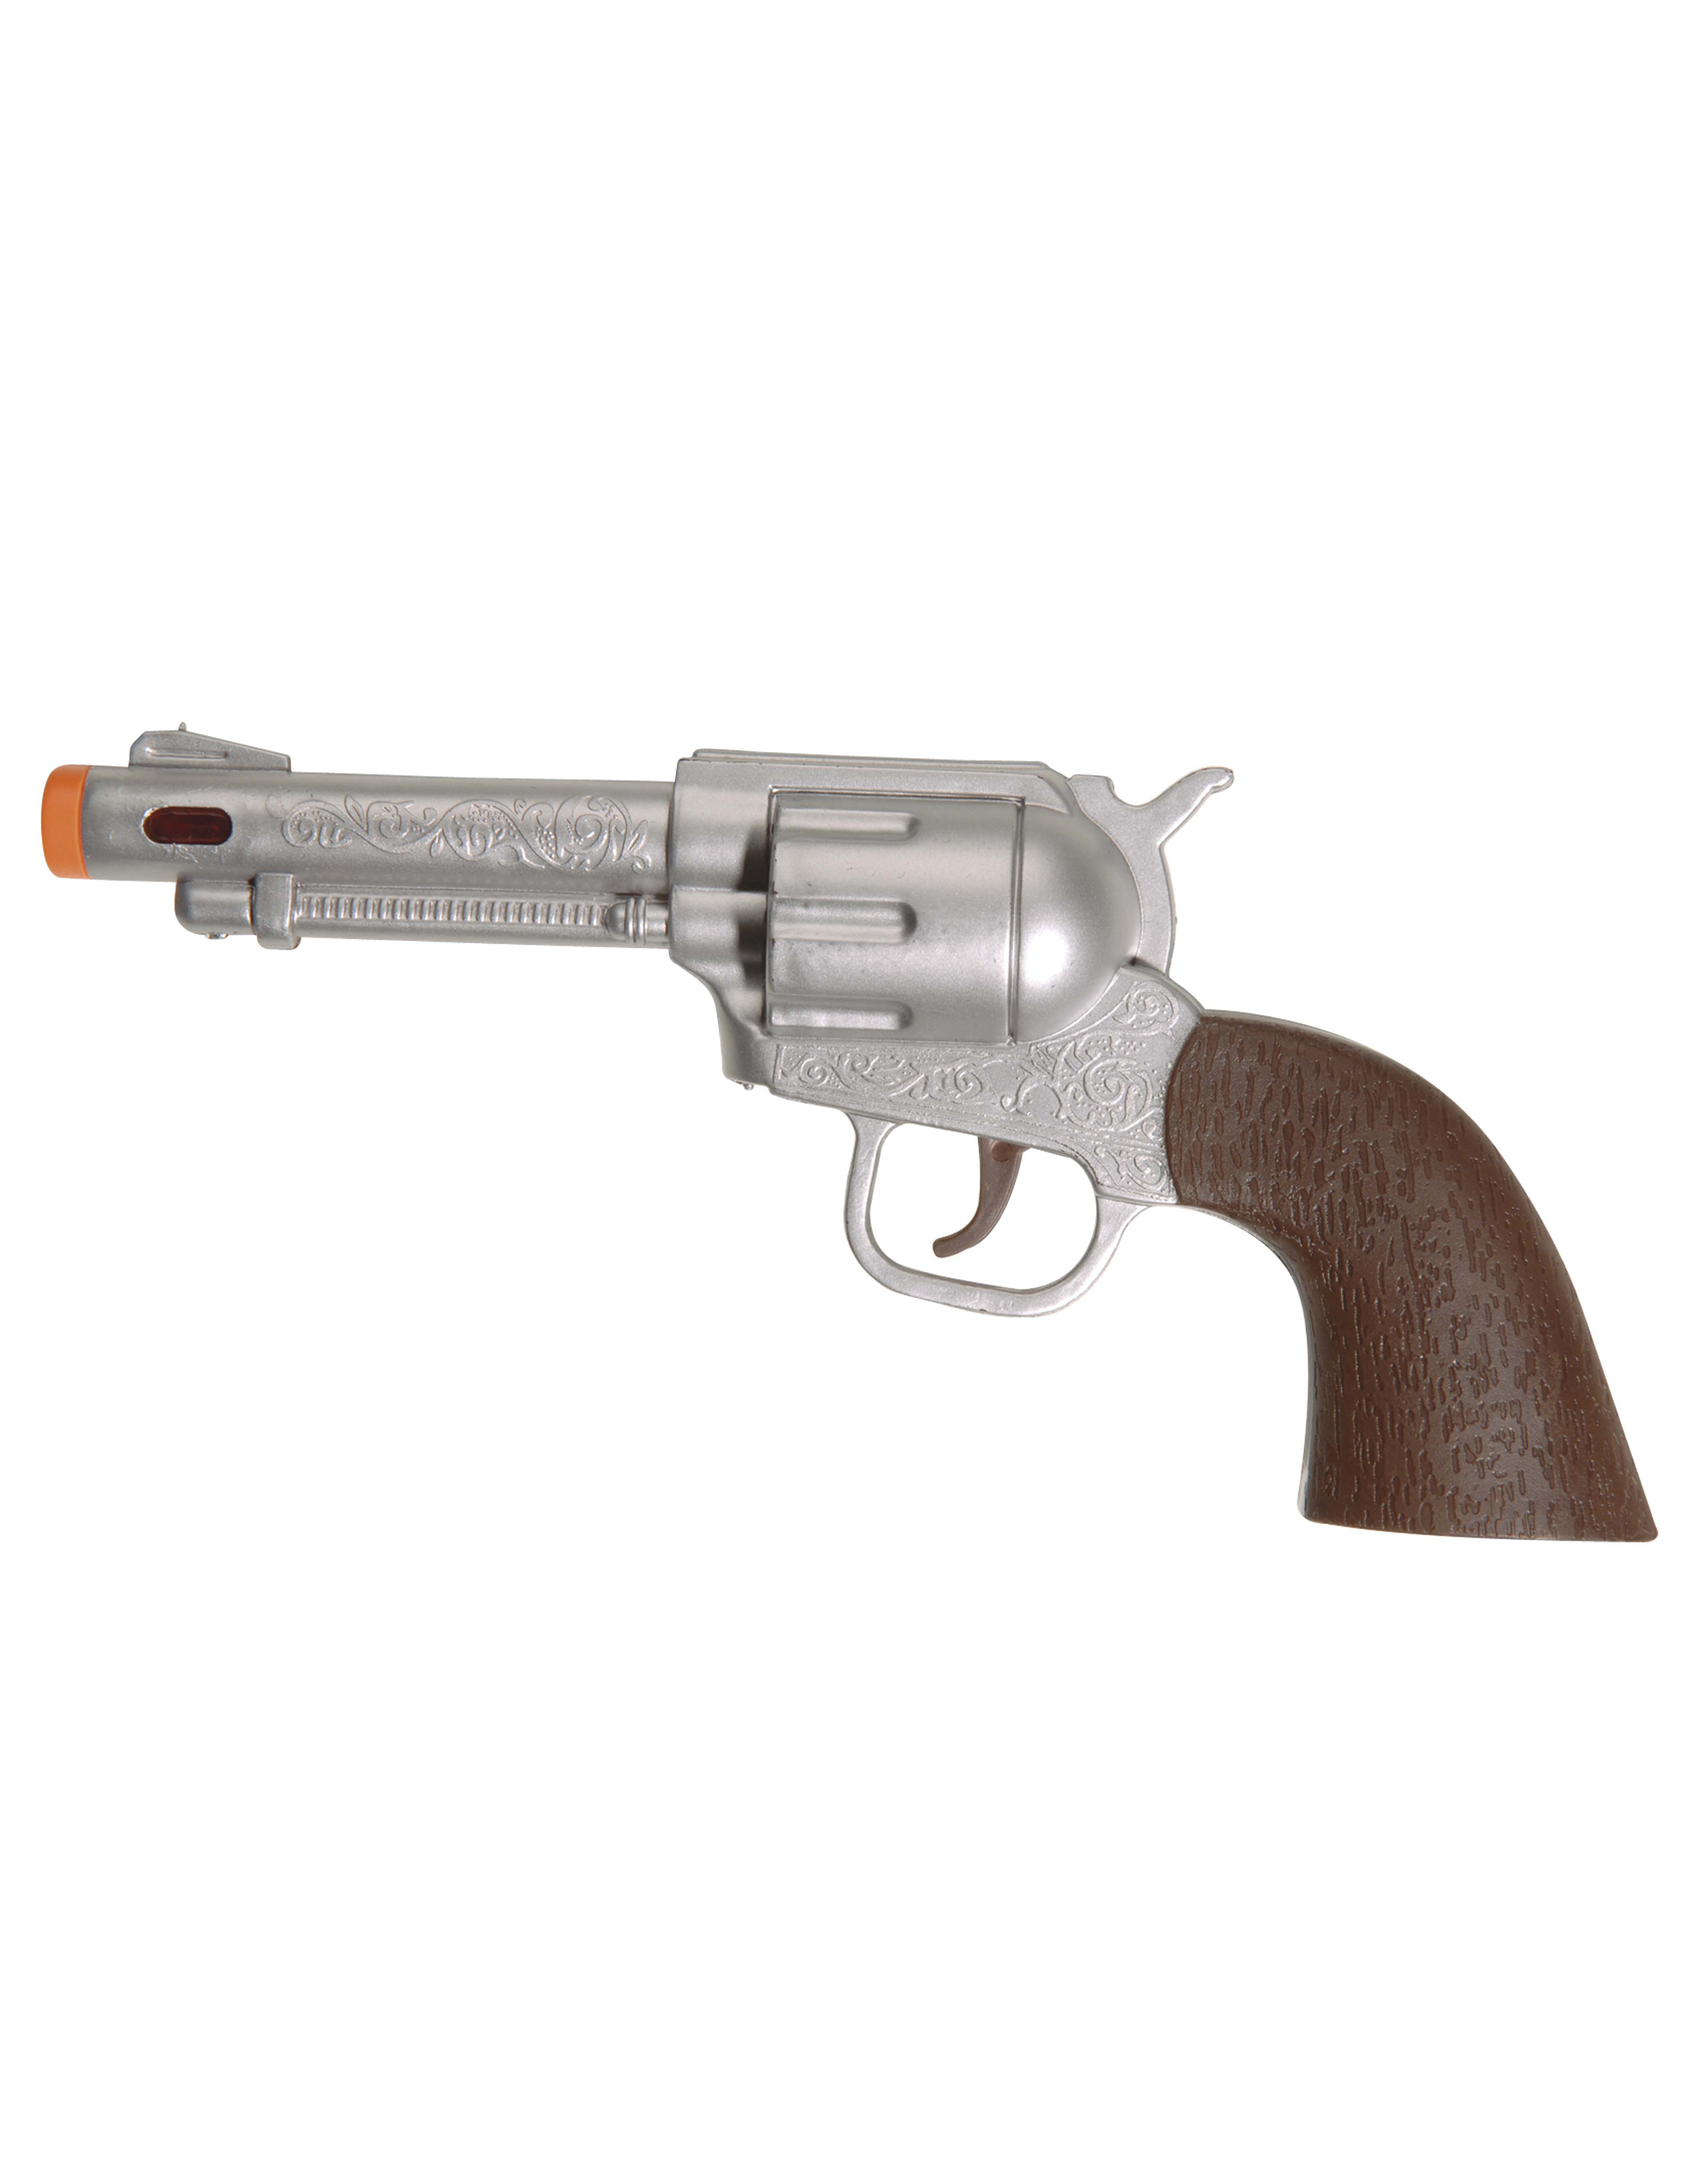 Pistolet sonore de cowboy d coration anniversaire et for Pistolet de decoration